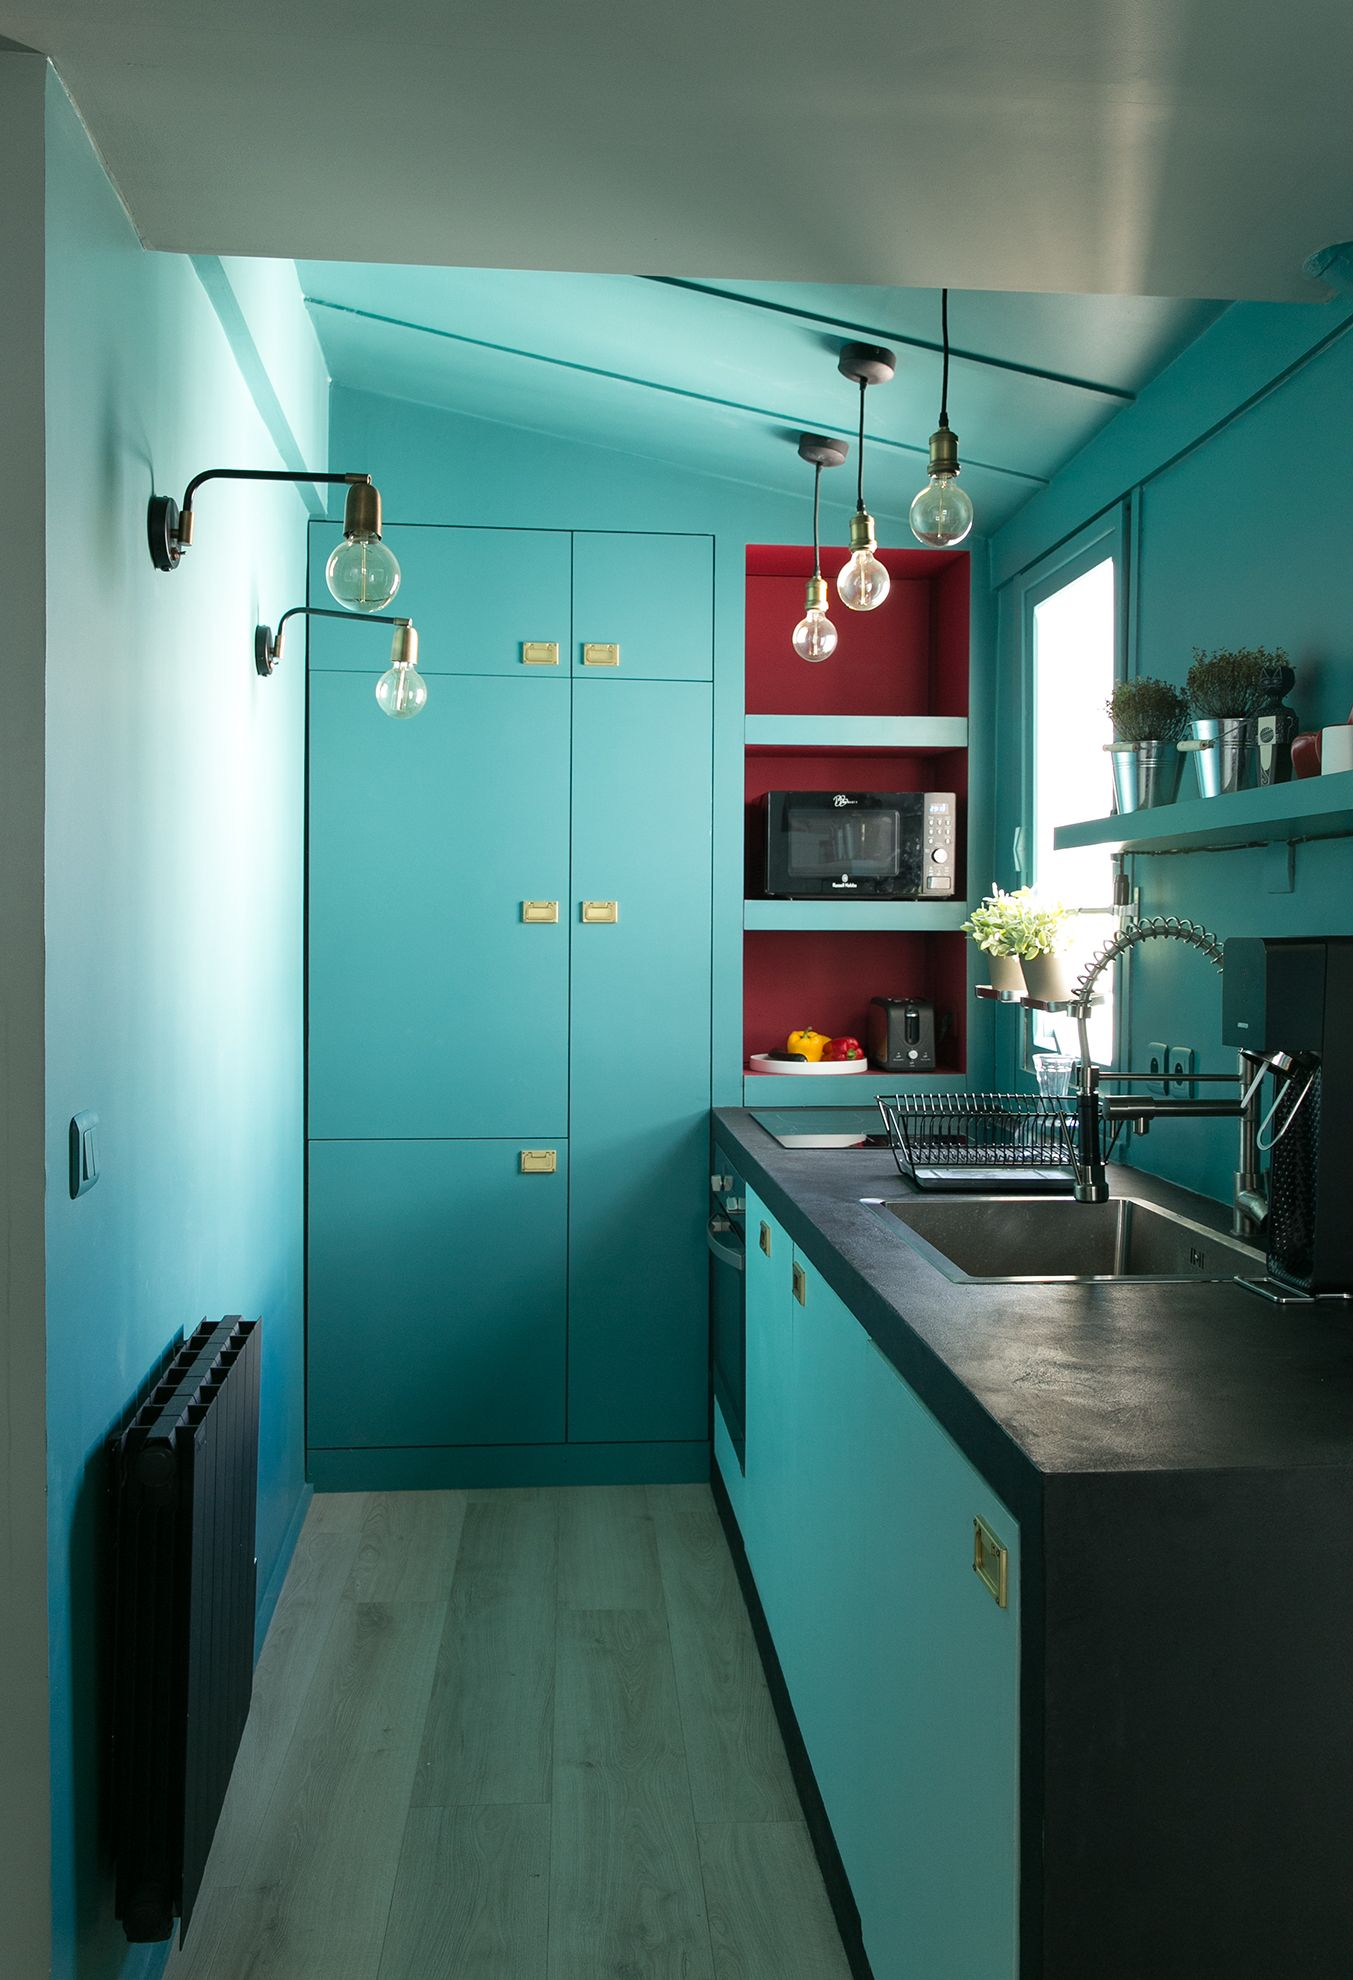 Gcg Architectes rue clauzel gcg architectes small blue kitchen touch of